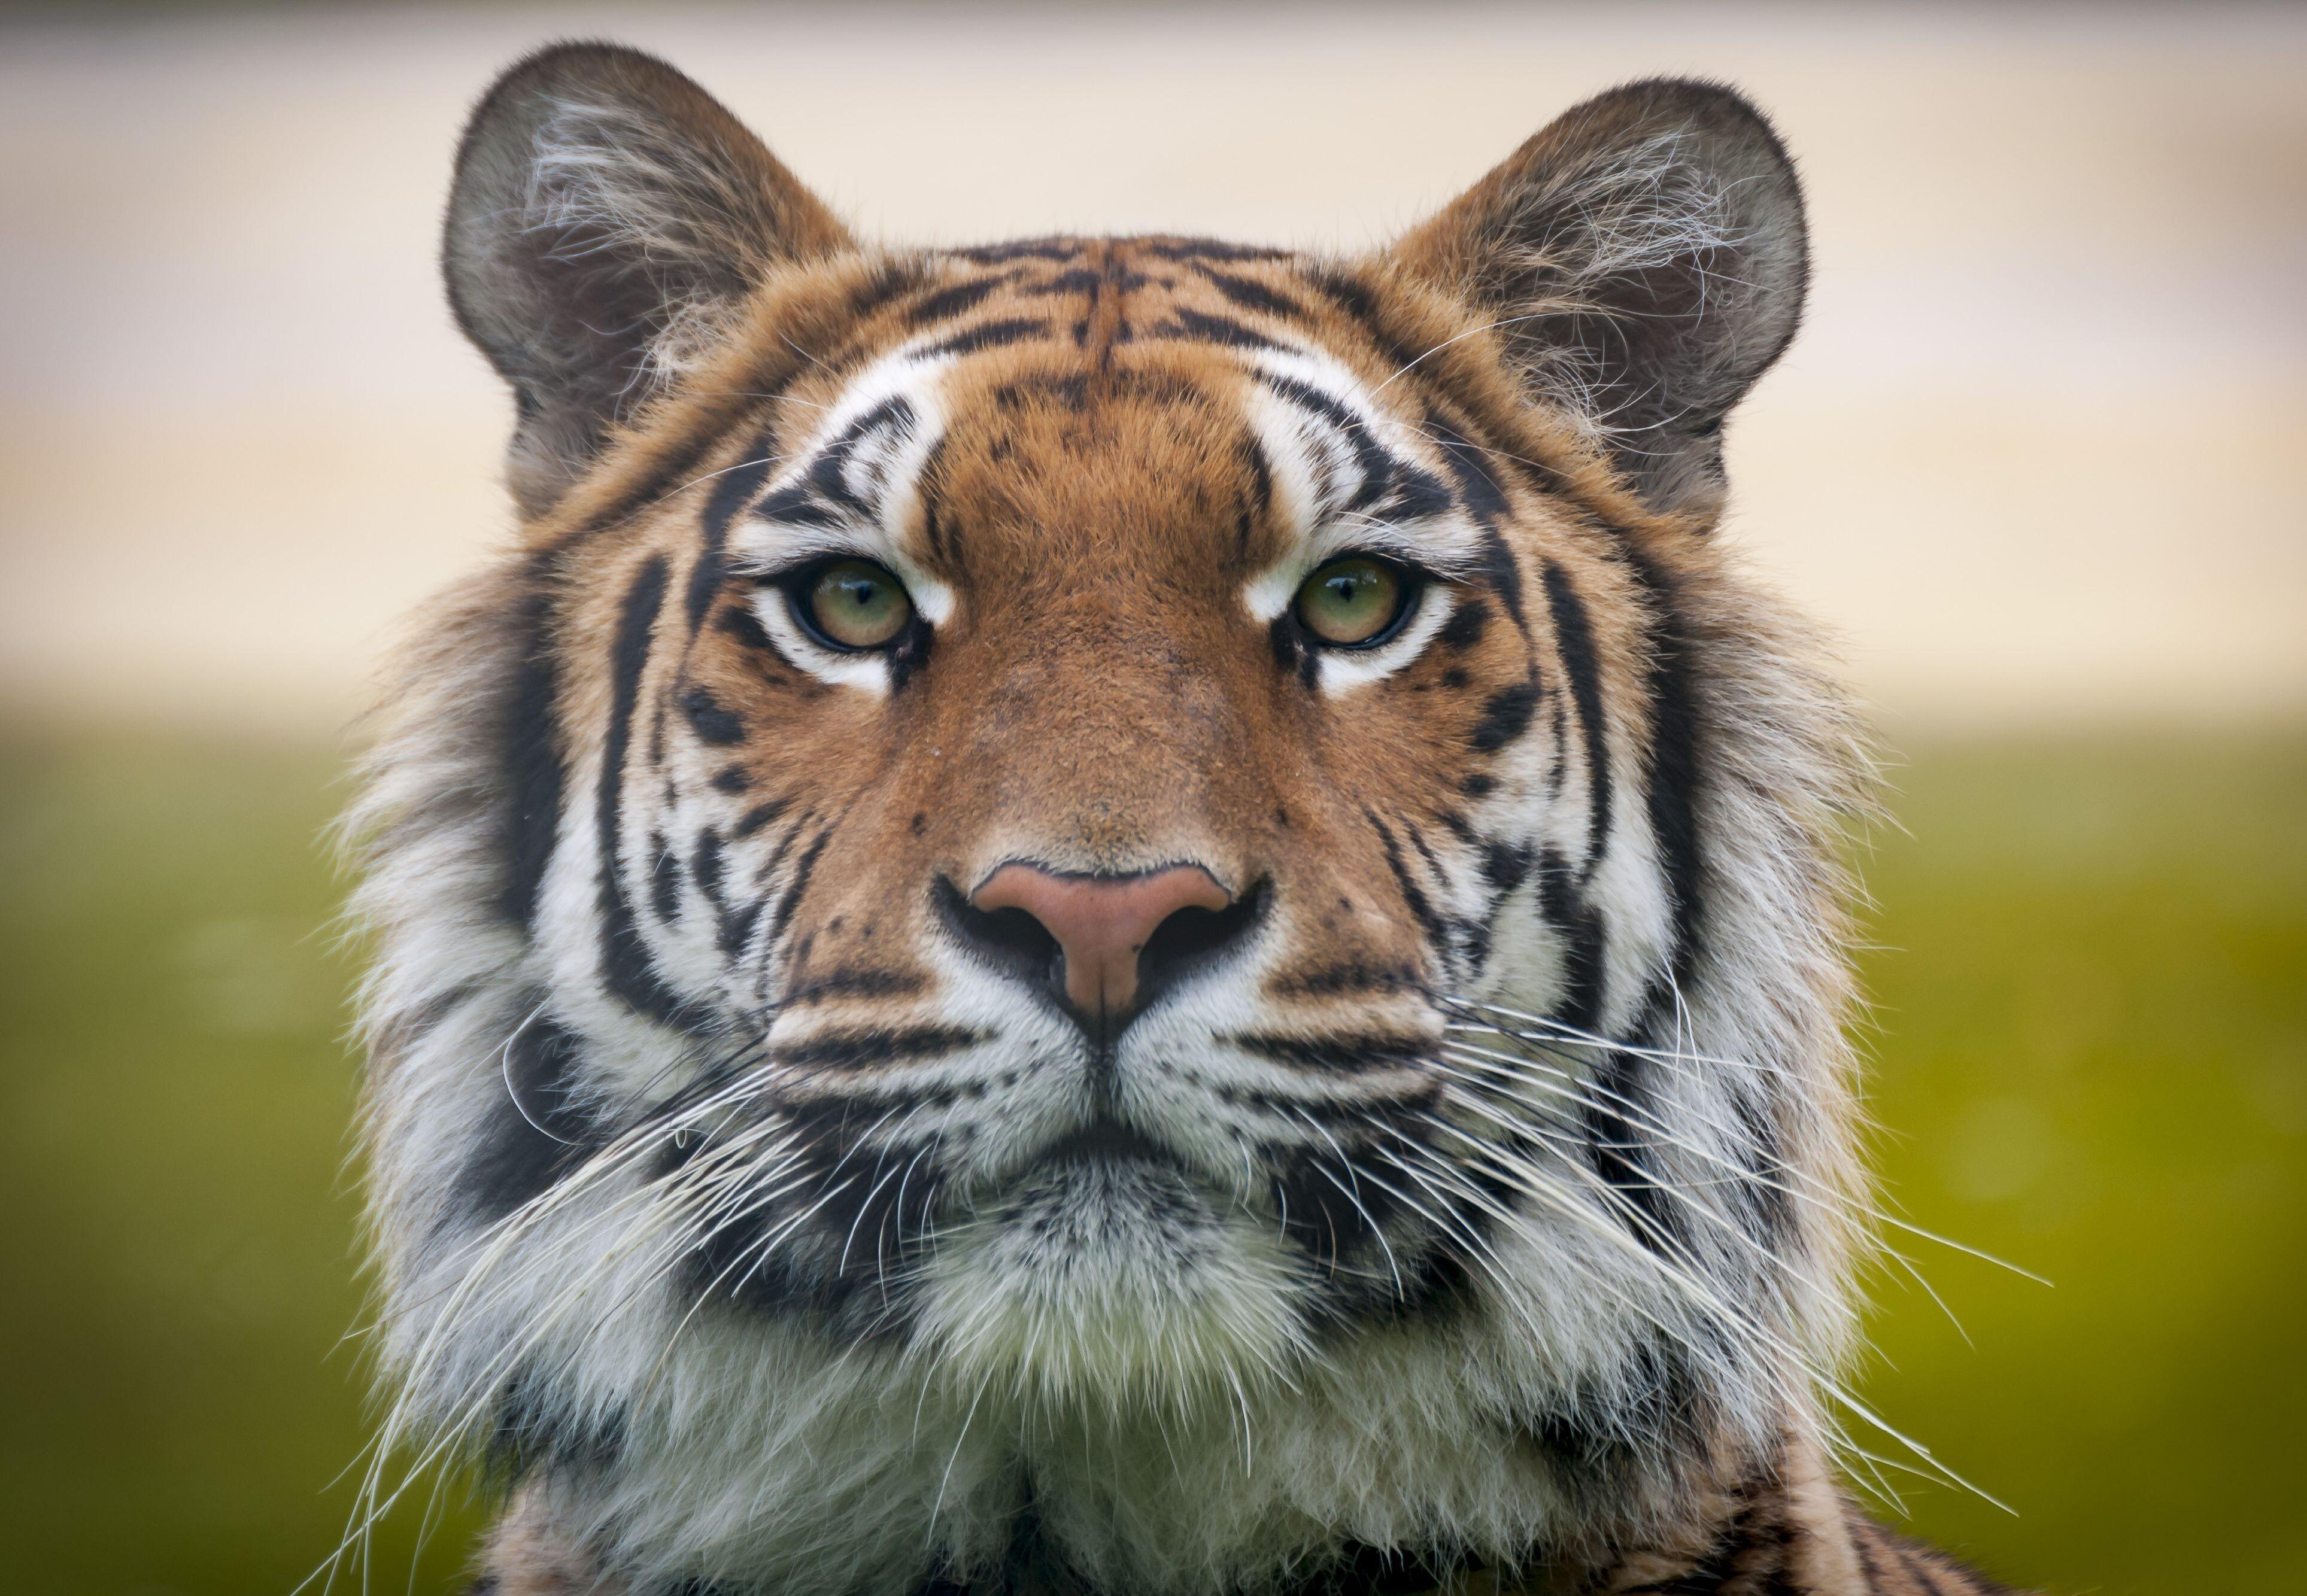 Tigers in Care of FOUR PAWS